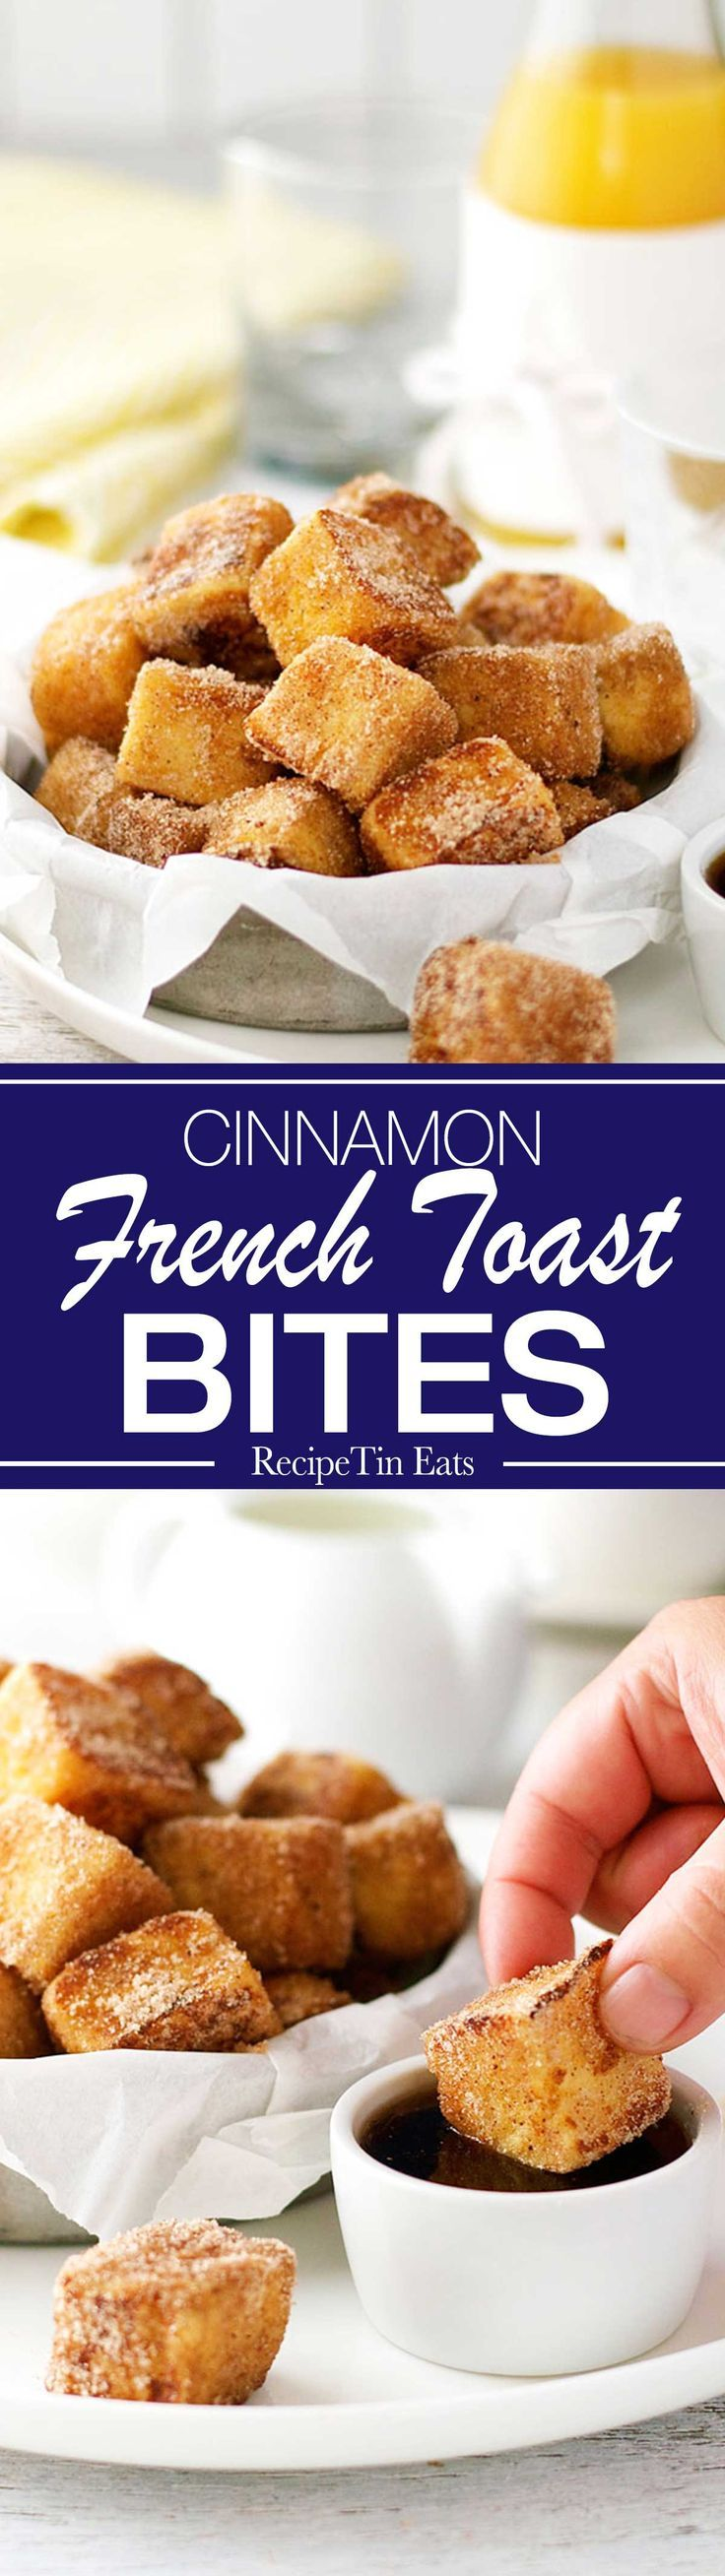 Love these! Fun and super fast to make a whole pan of them in one go. They taste like cinnamon doughnuts!